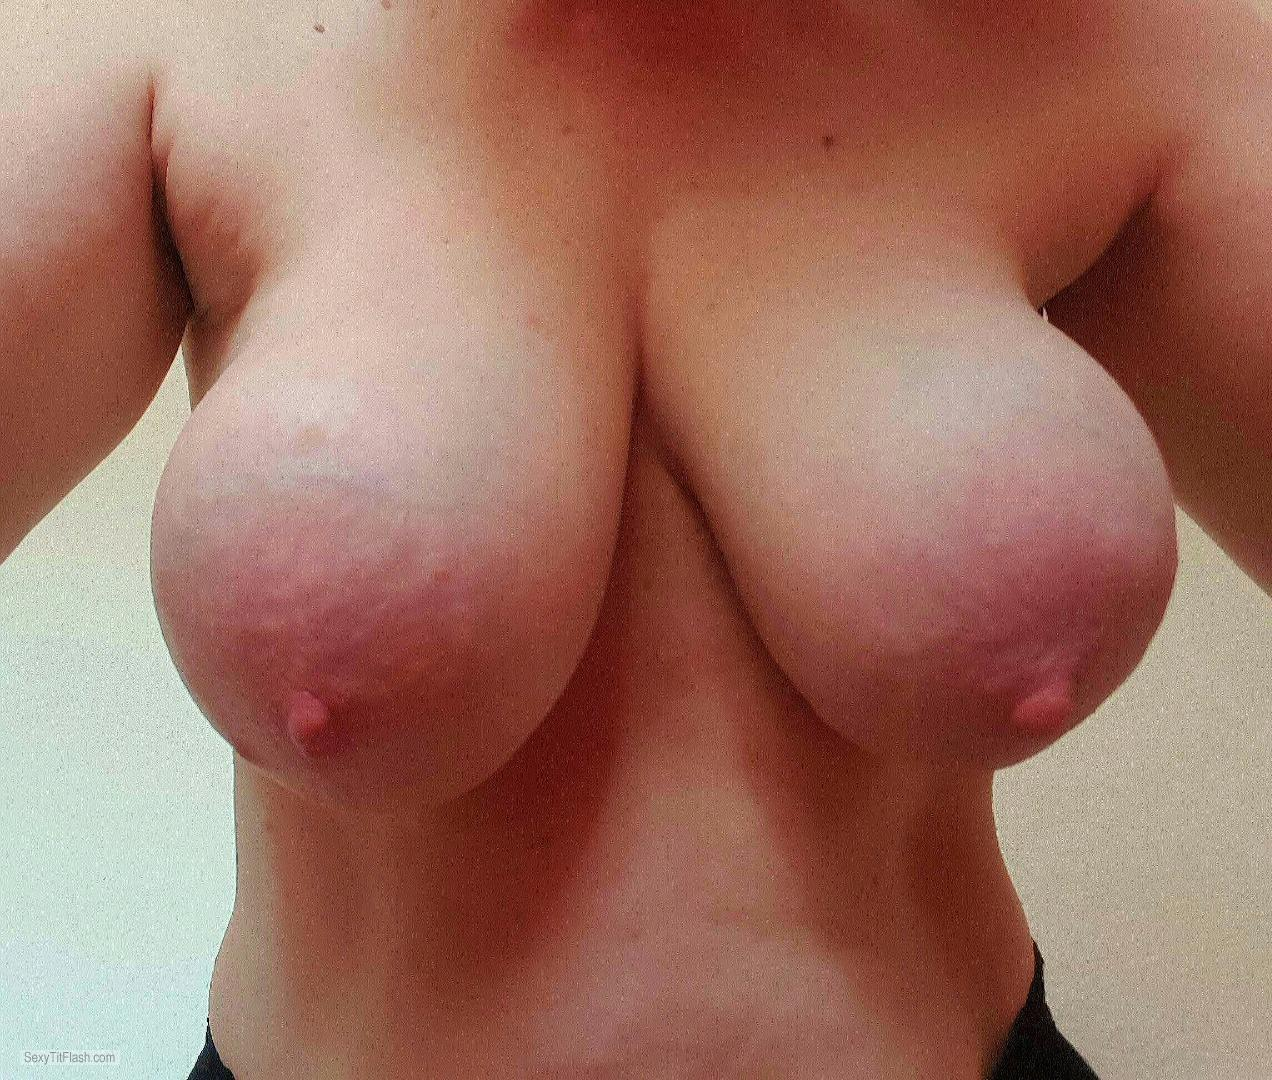 Tit Flash: My Very Big Tits (Selfie) - Topleds from United Kingdom